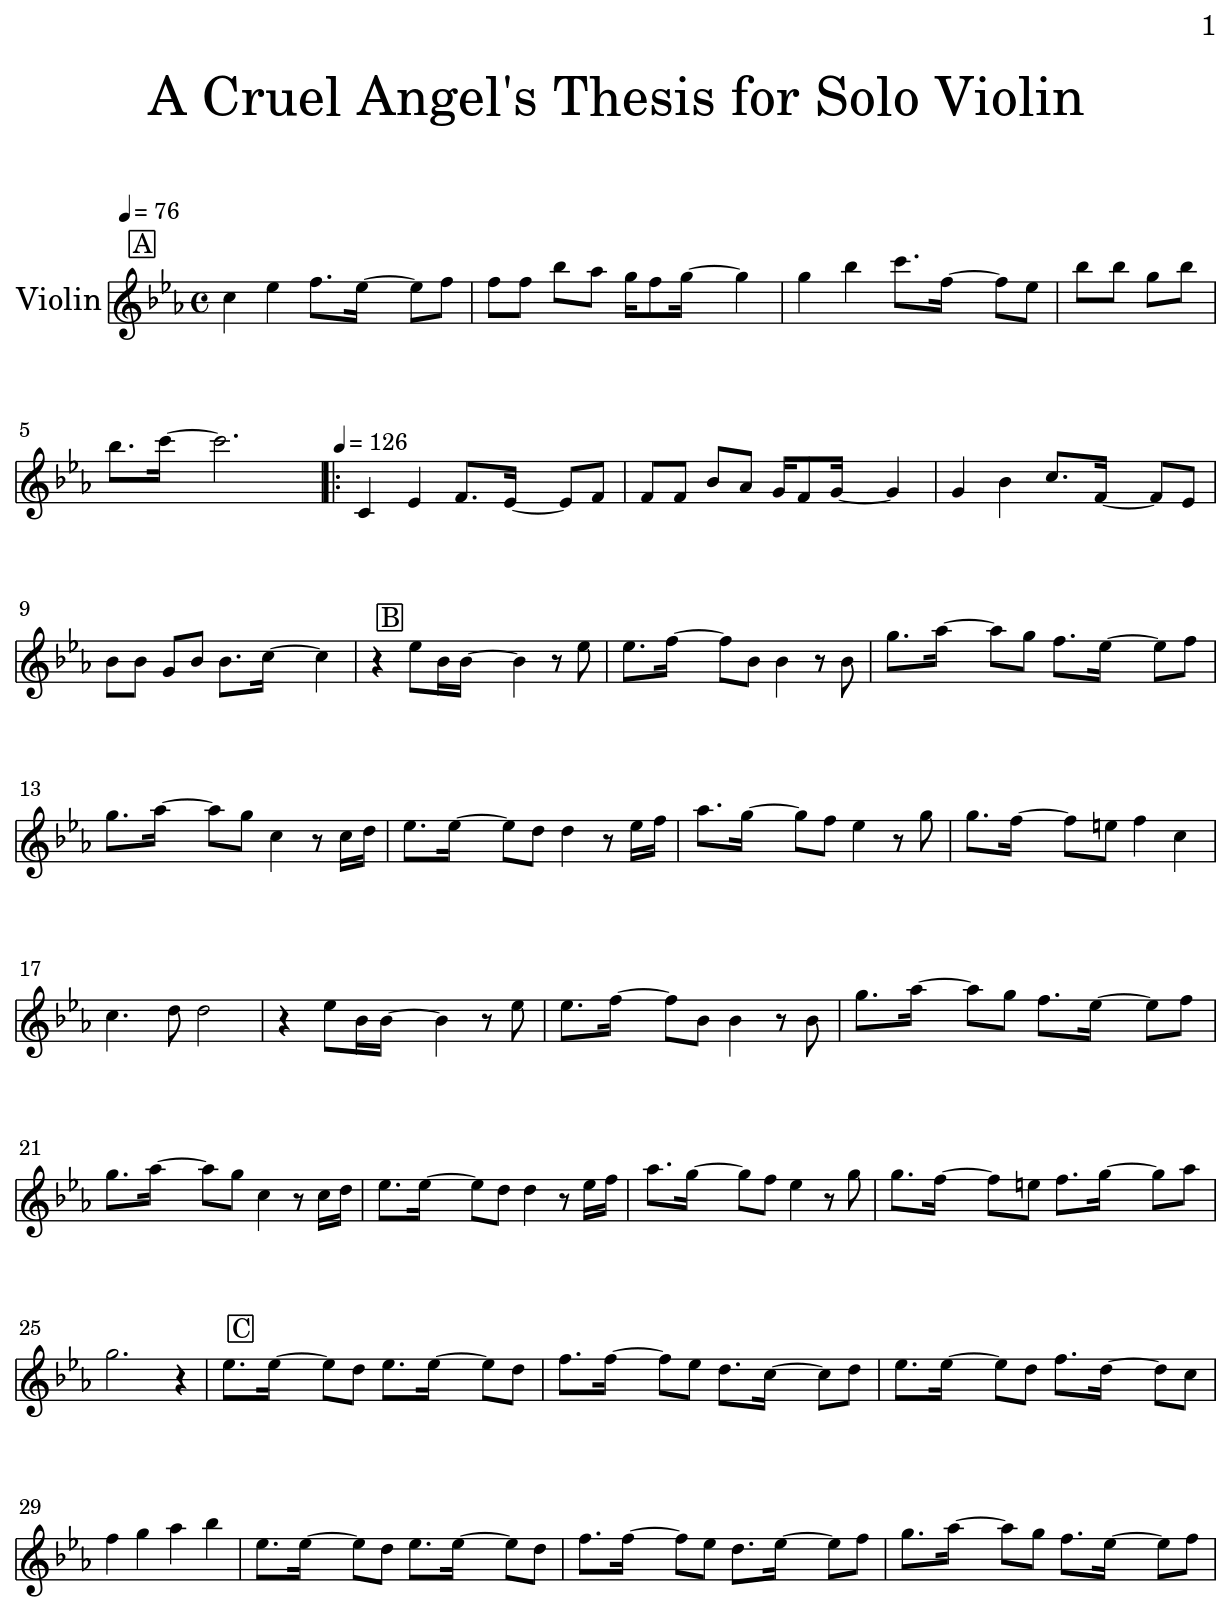 cruel angels thesis sheet music violin